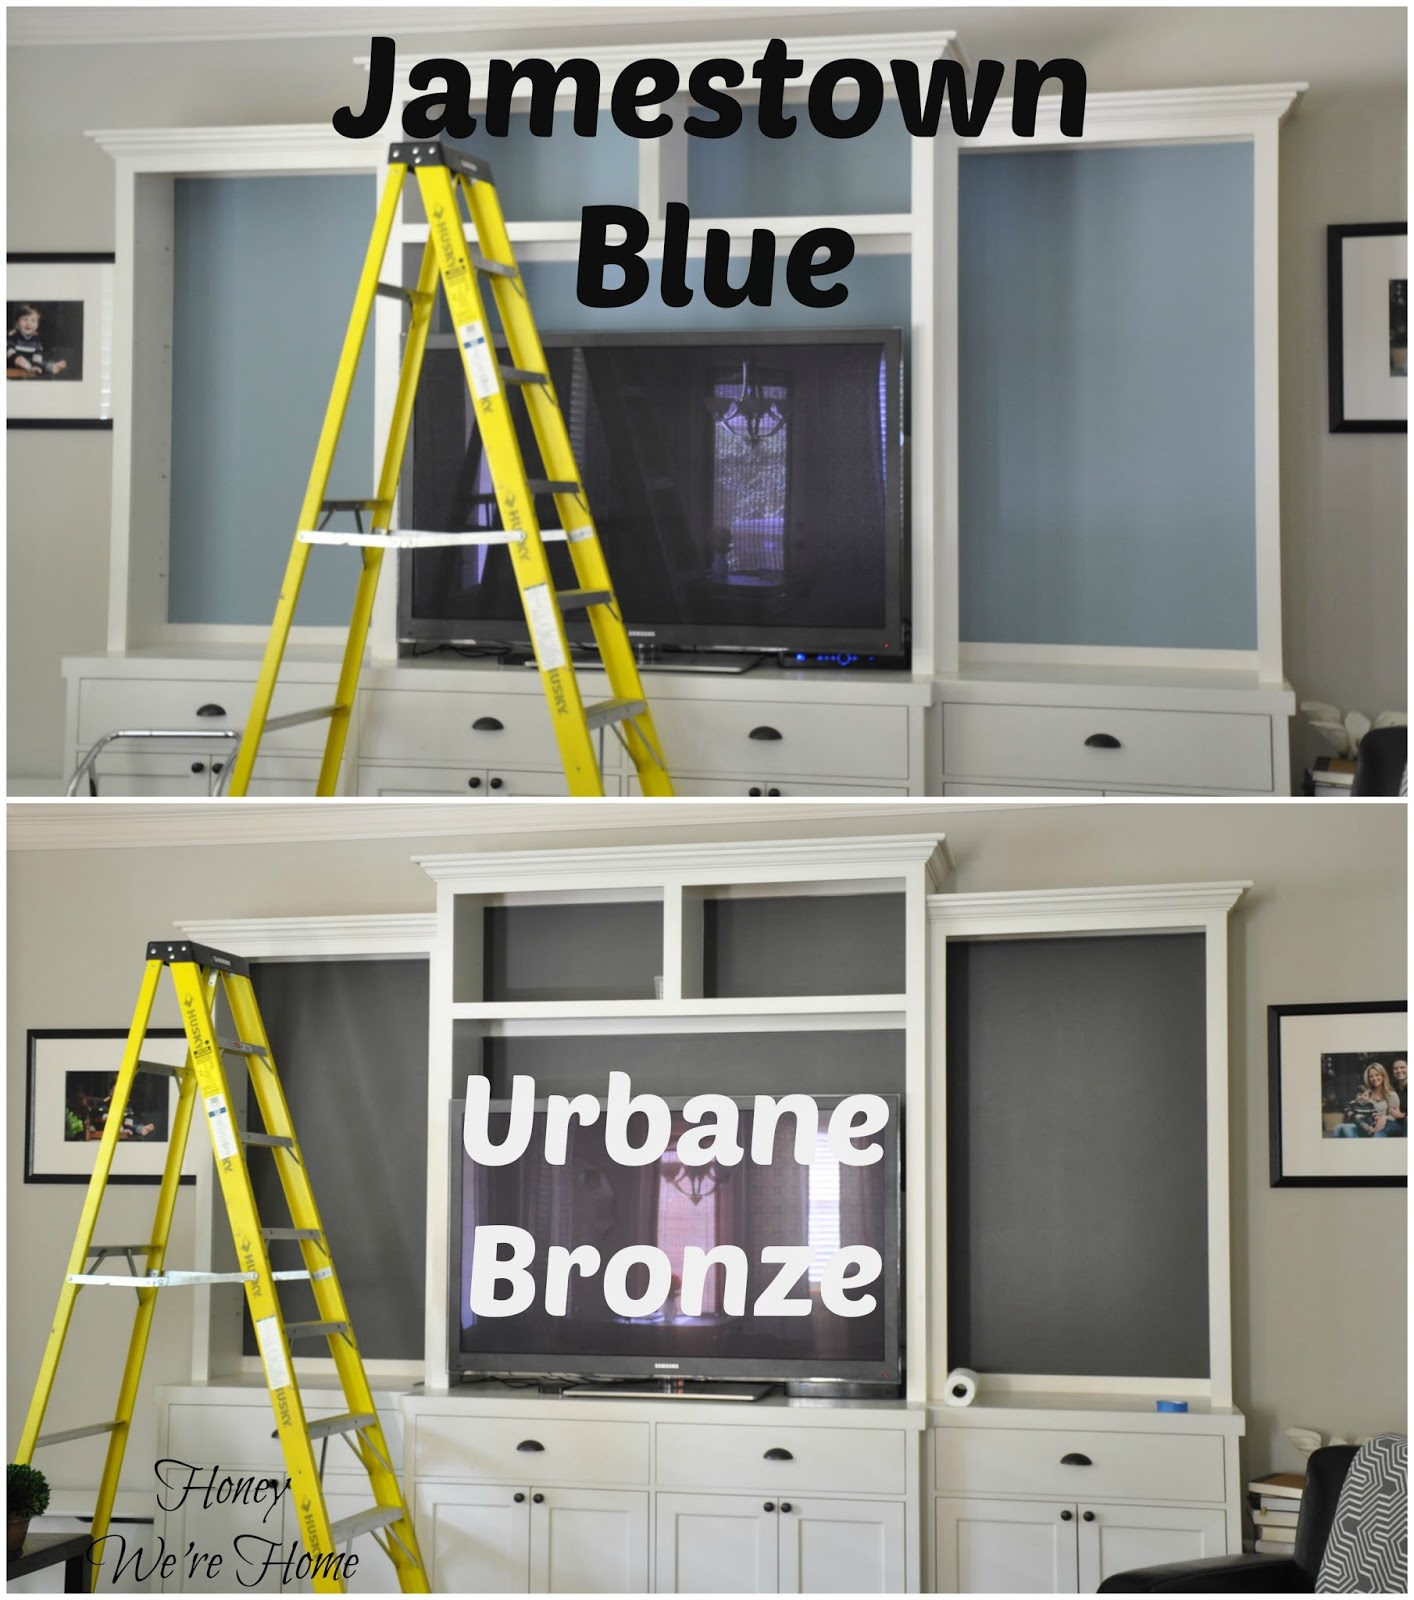 I Did Not Prime Or Paint White Over The Blue, Just Applied Two Coats Of The  Urbane Bronze.